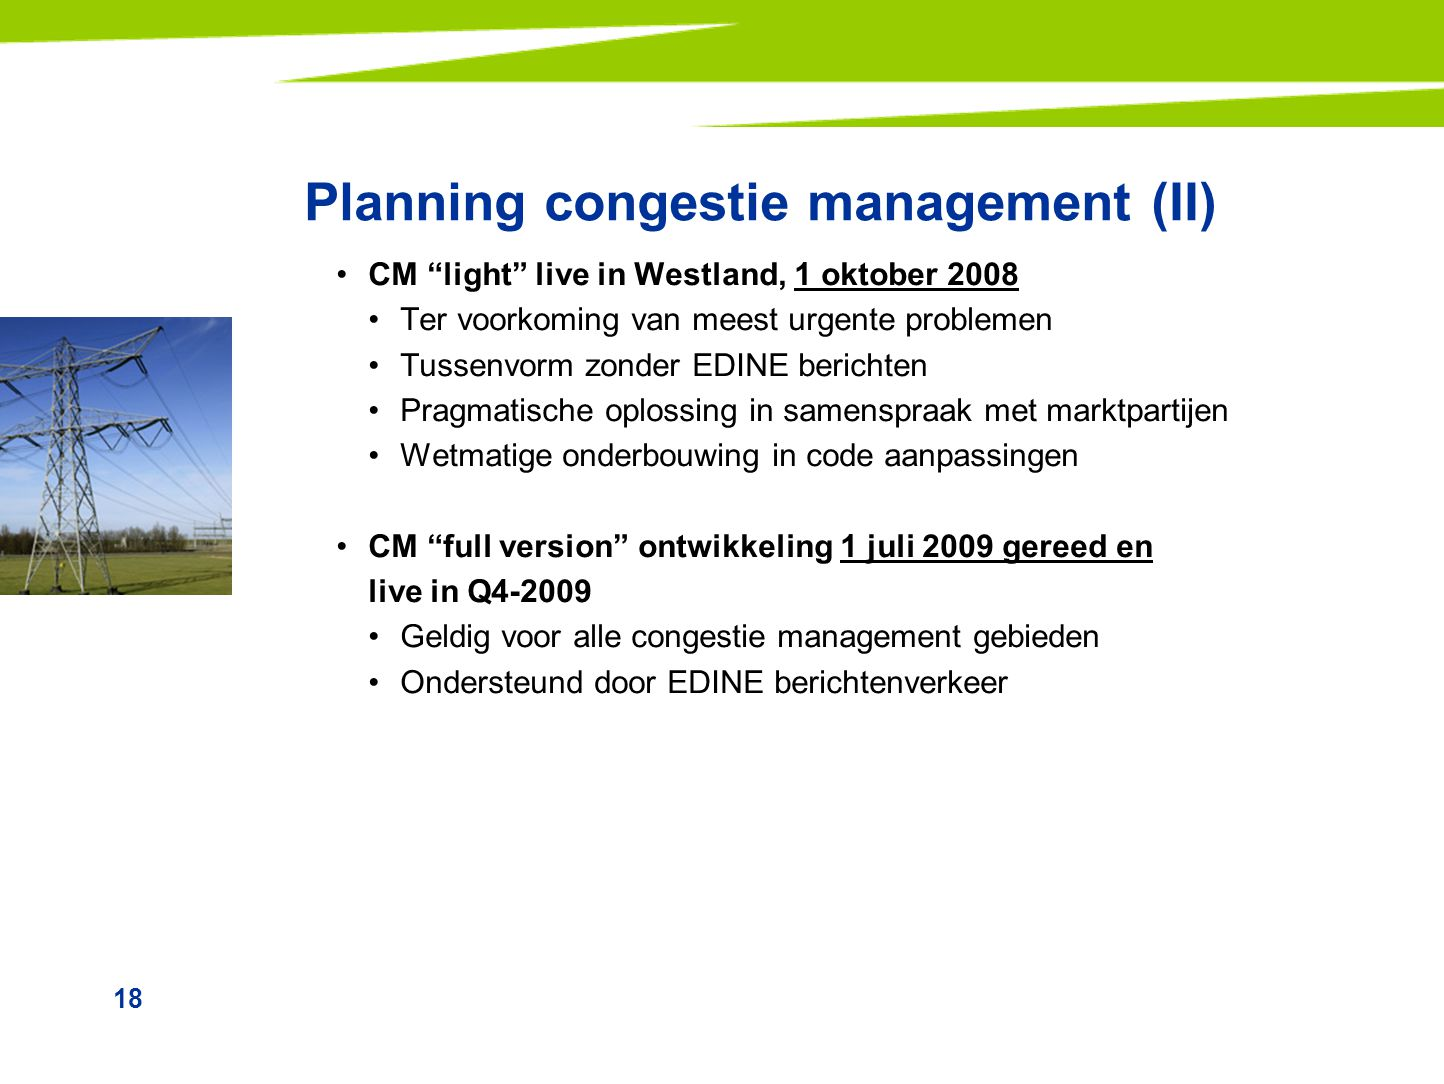 Planning congestie management (II)